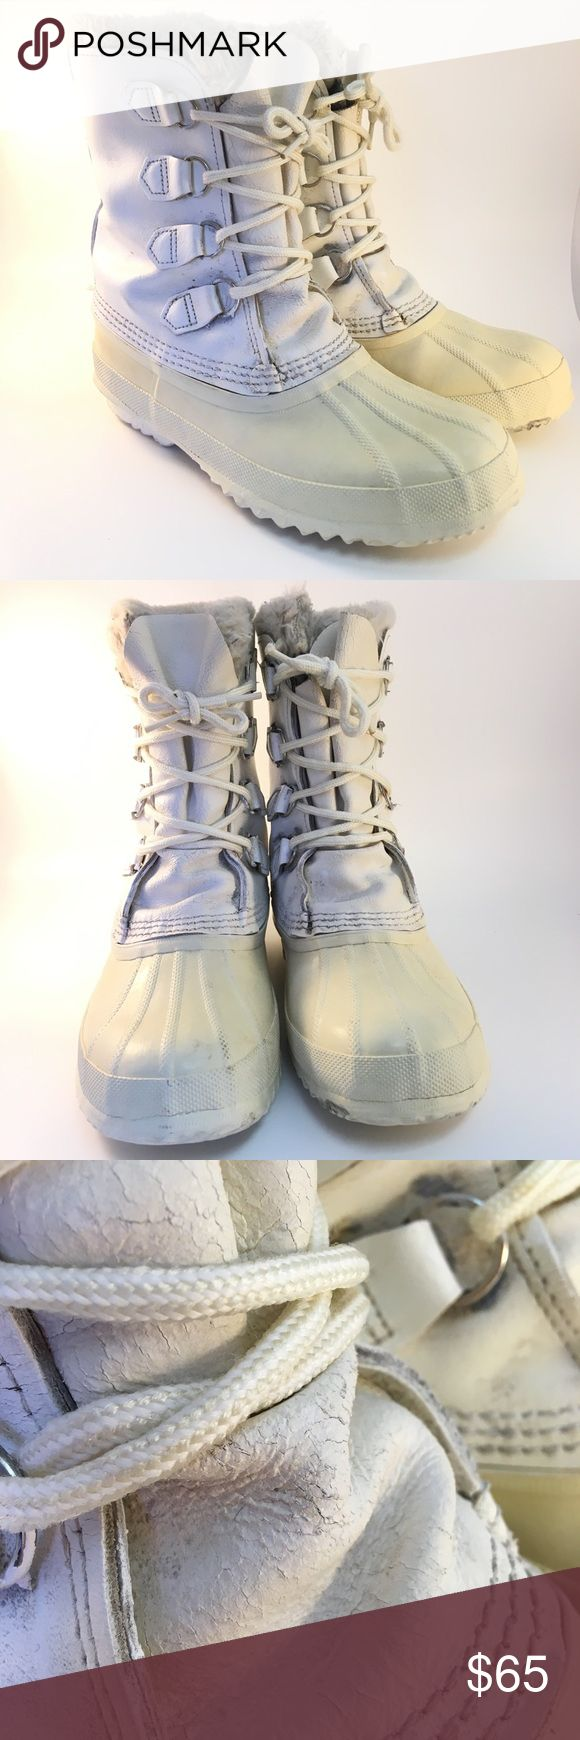 Sorel Manitou White Snow Boots size 9 Sorel manitou white snow boots size 9  They have cracking/wear Sorel Shoes Winter & Rain Boots